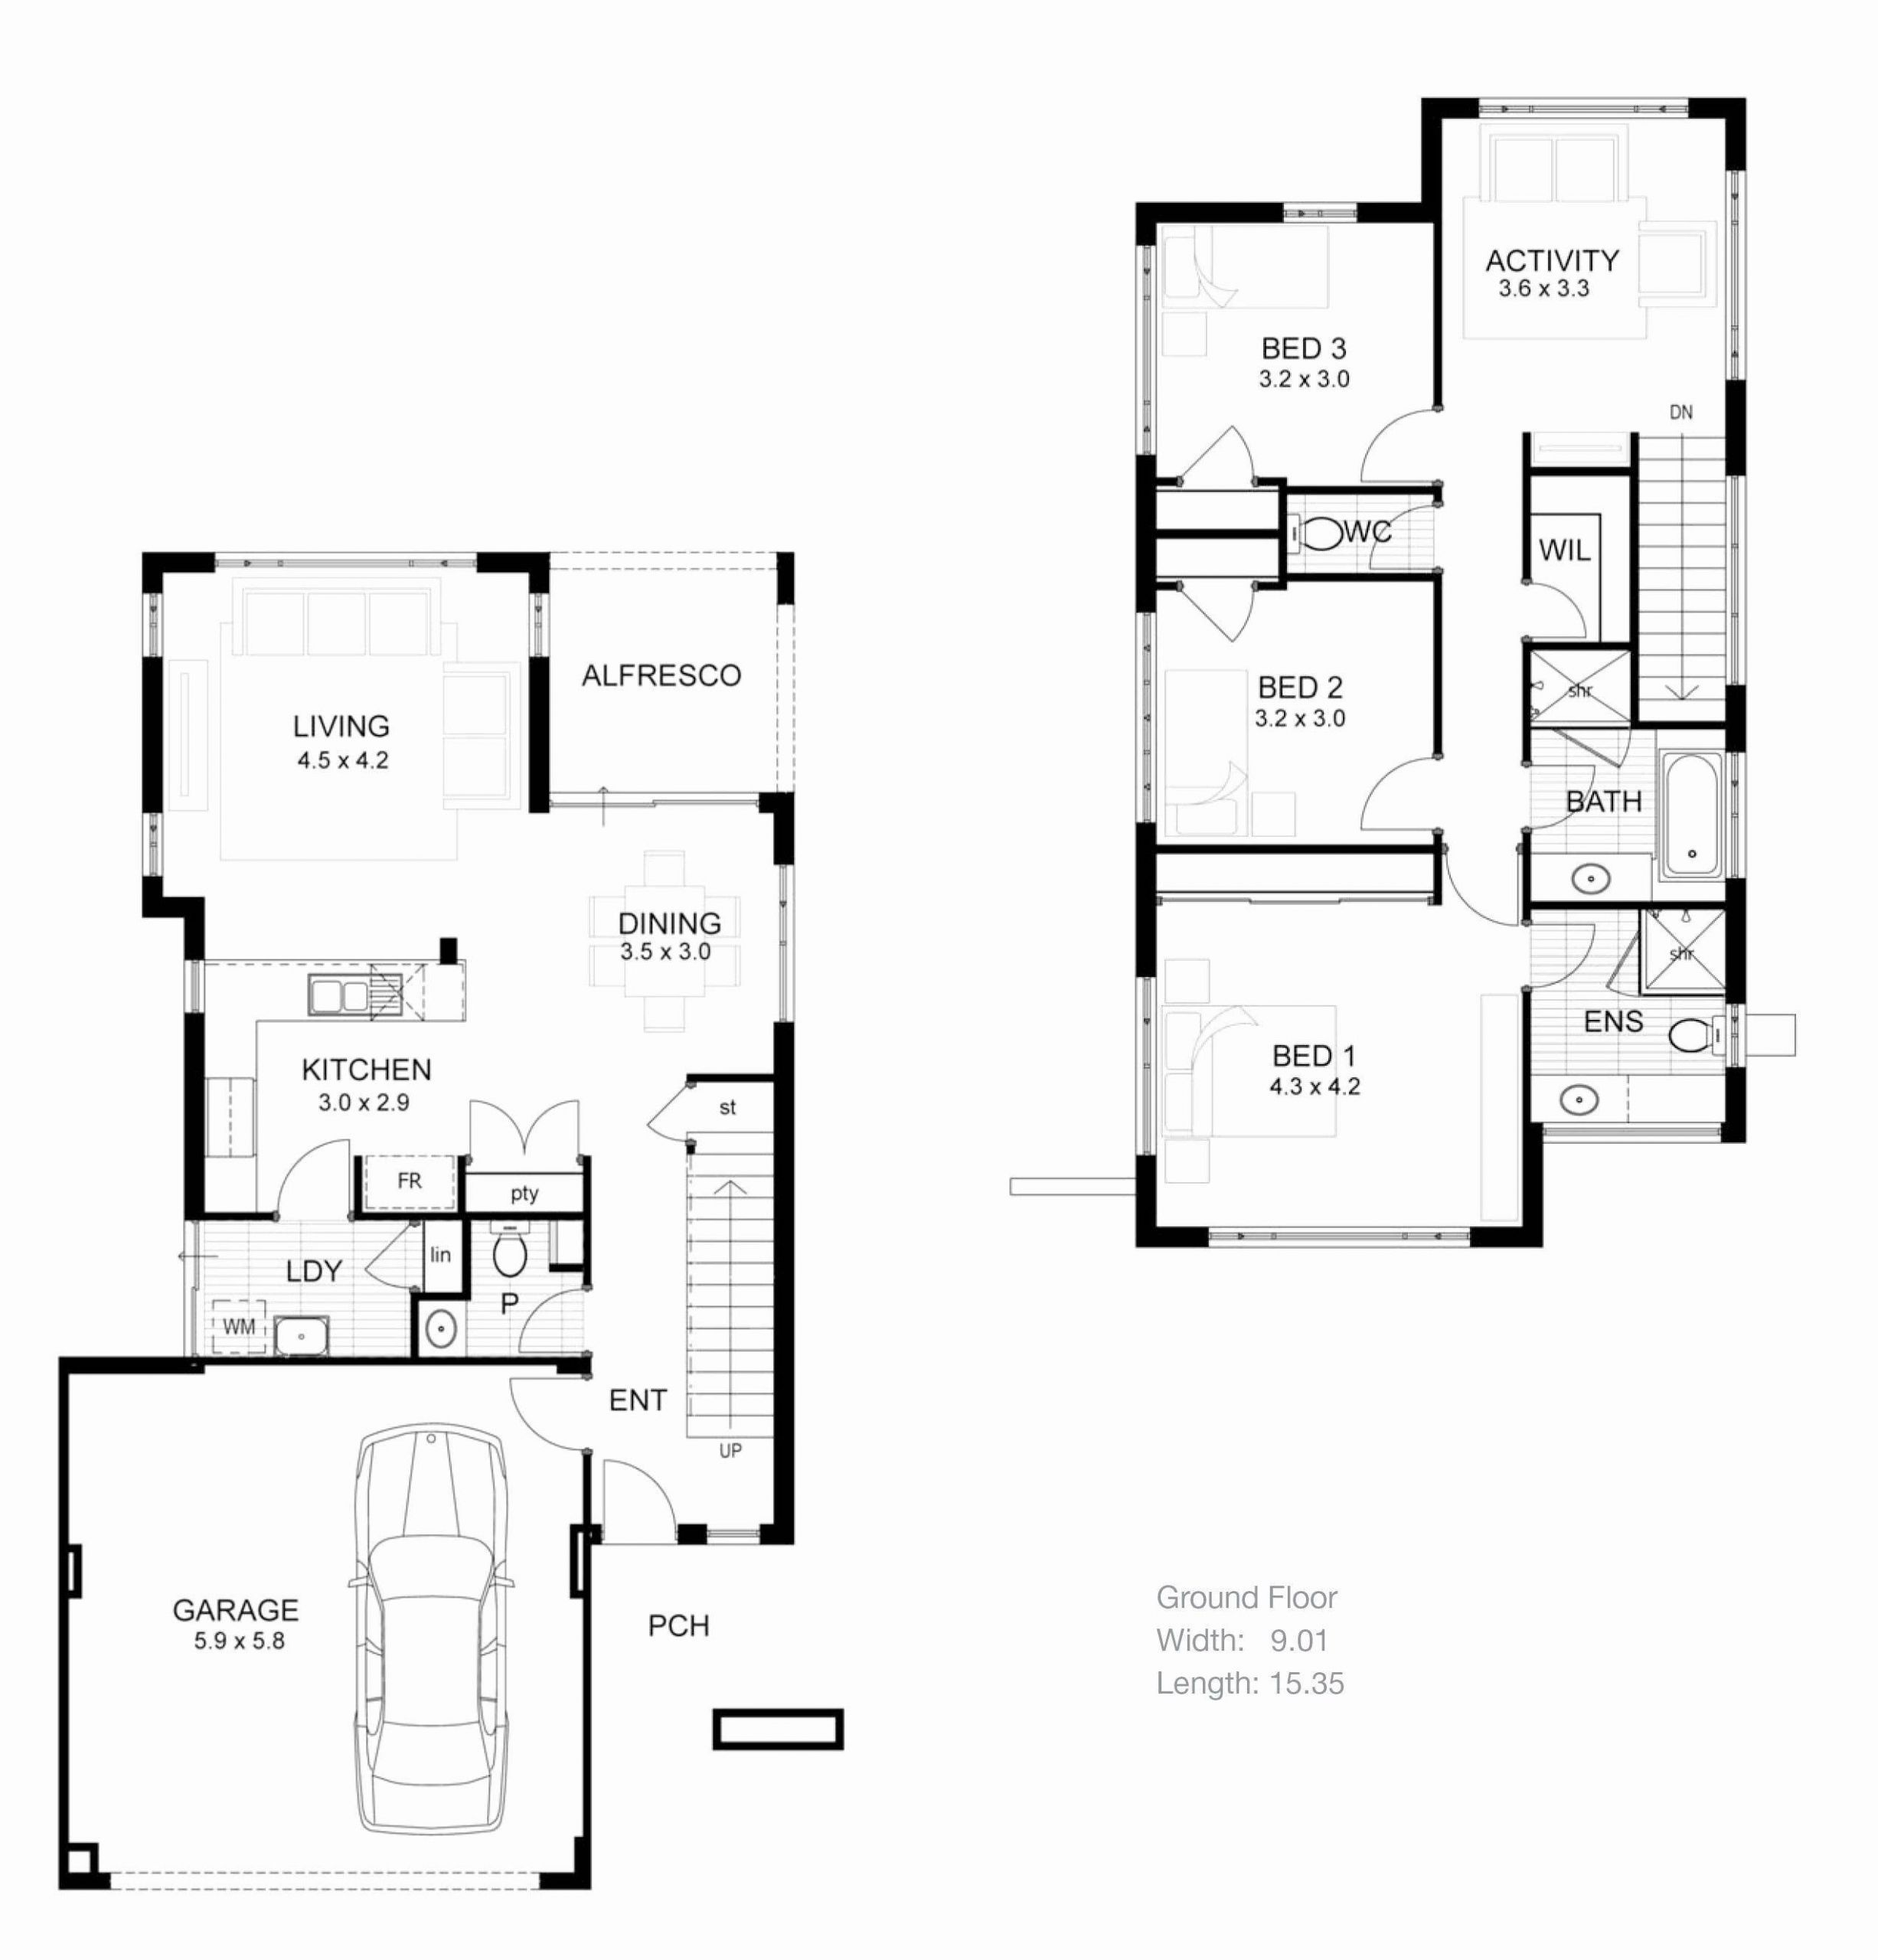 Fresh Design Farnsworth House Floor Plan Buildingdesign Homedesign Architecturehomed Three Bedroom House Plan House Plans With Photos Simple Floor Plans